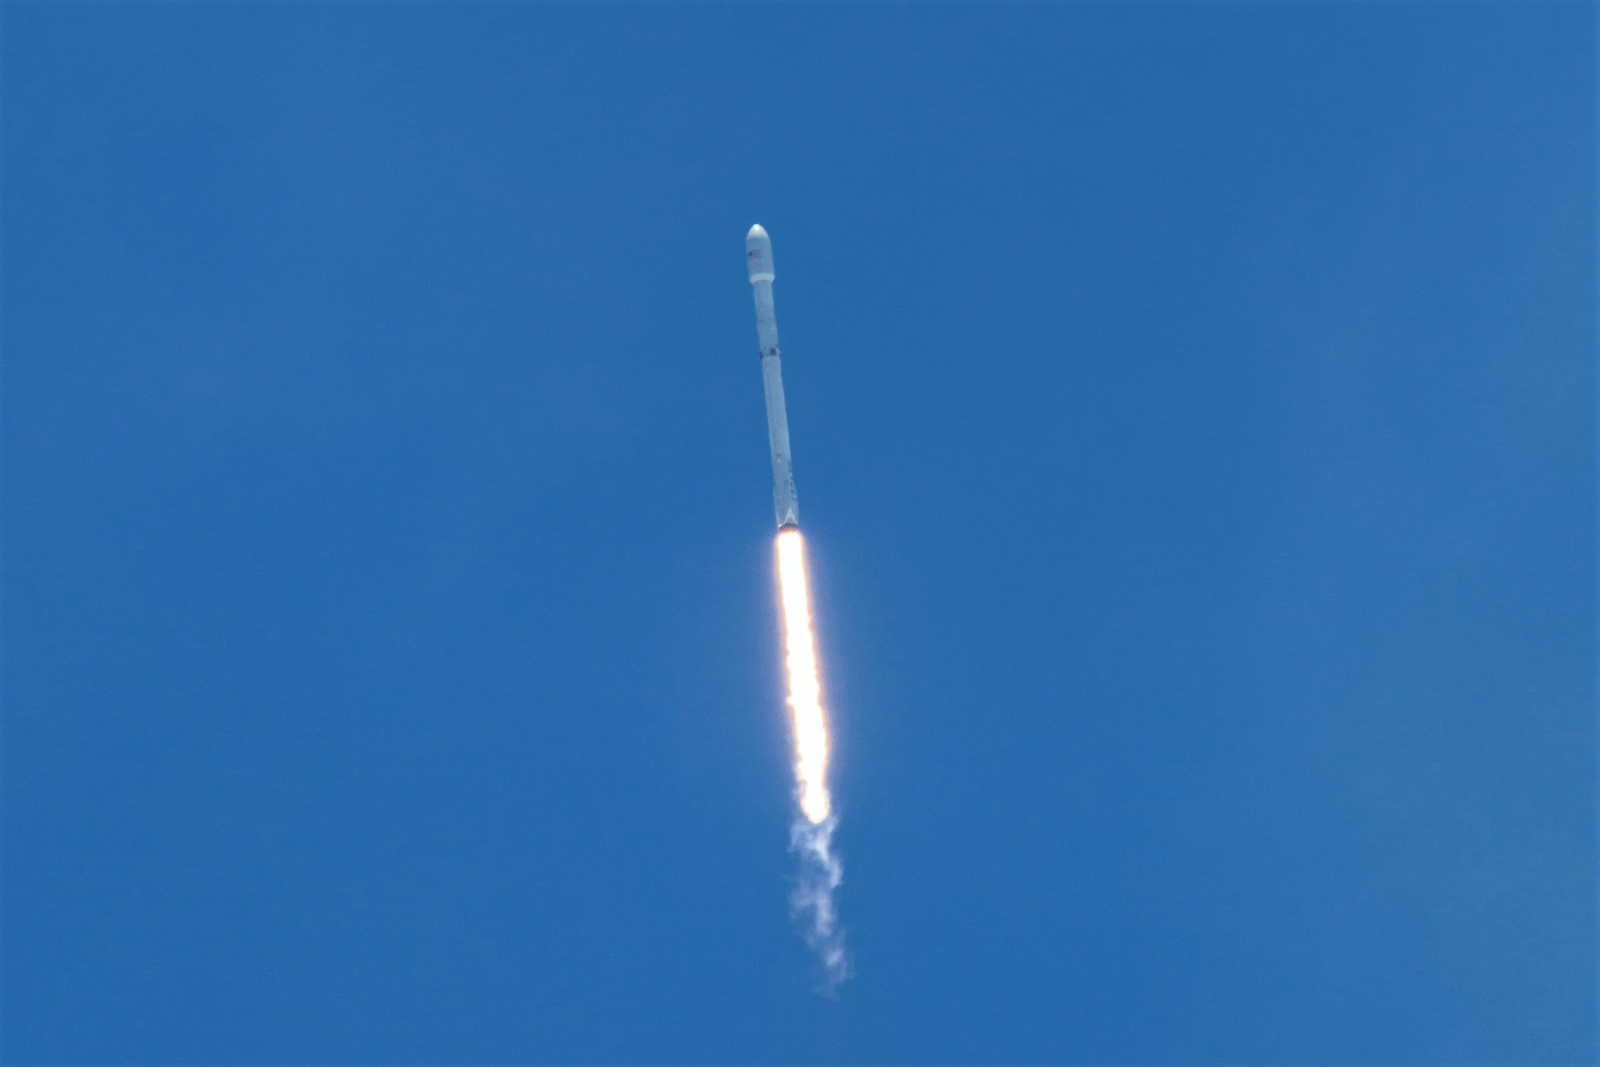 Falcon-9 / Iridium-2 mission (2017-06-25)